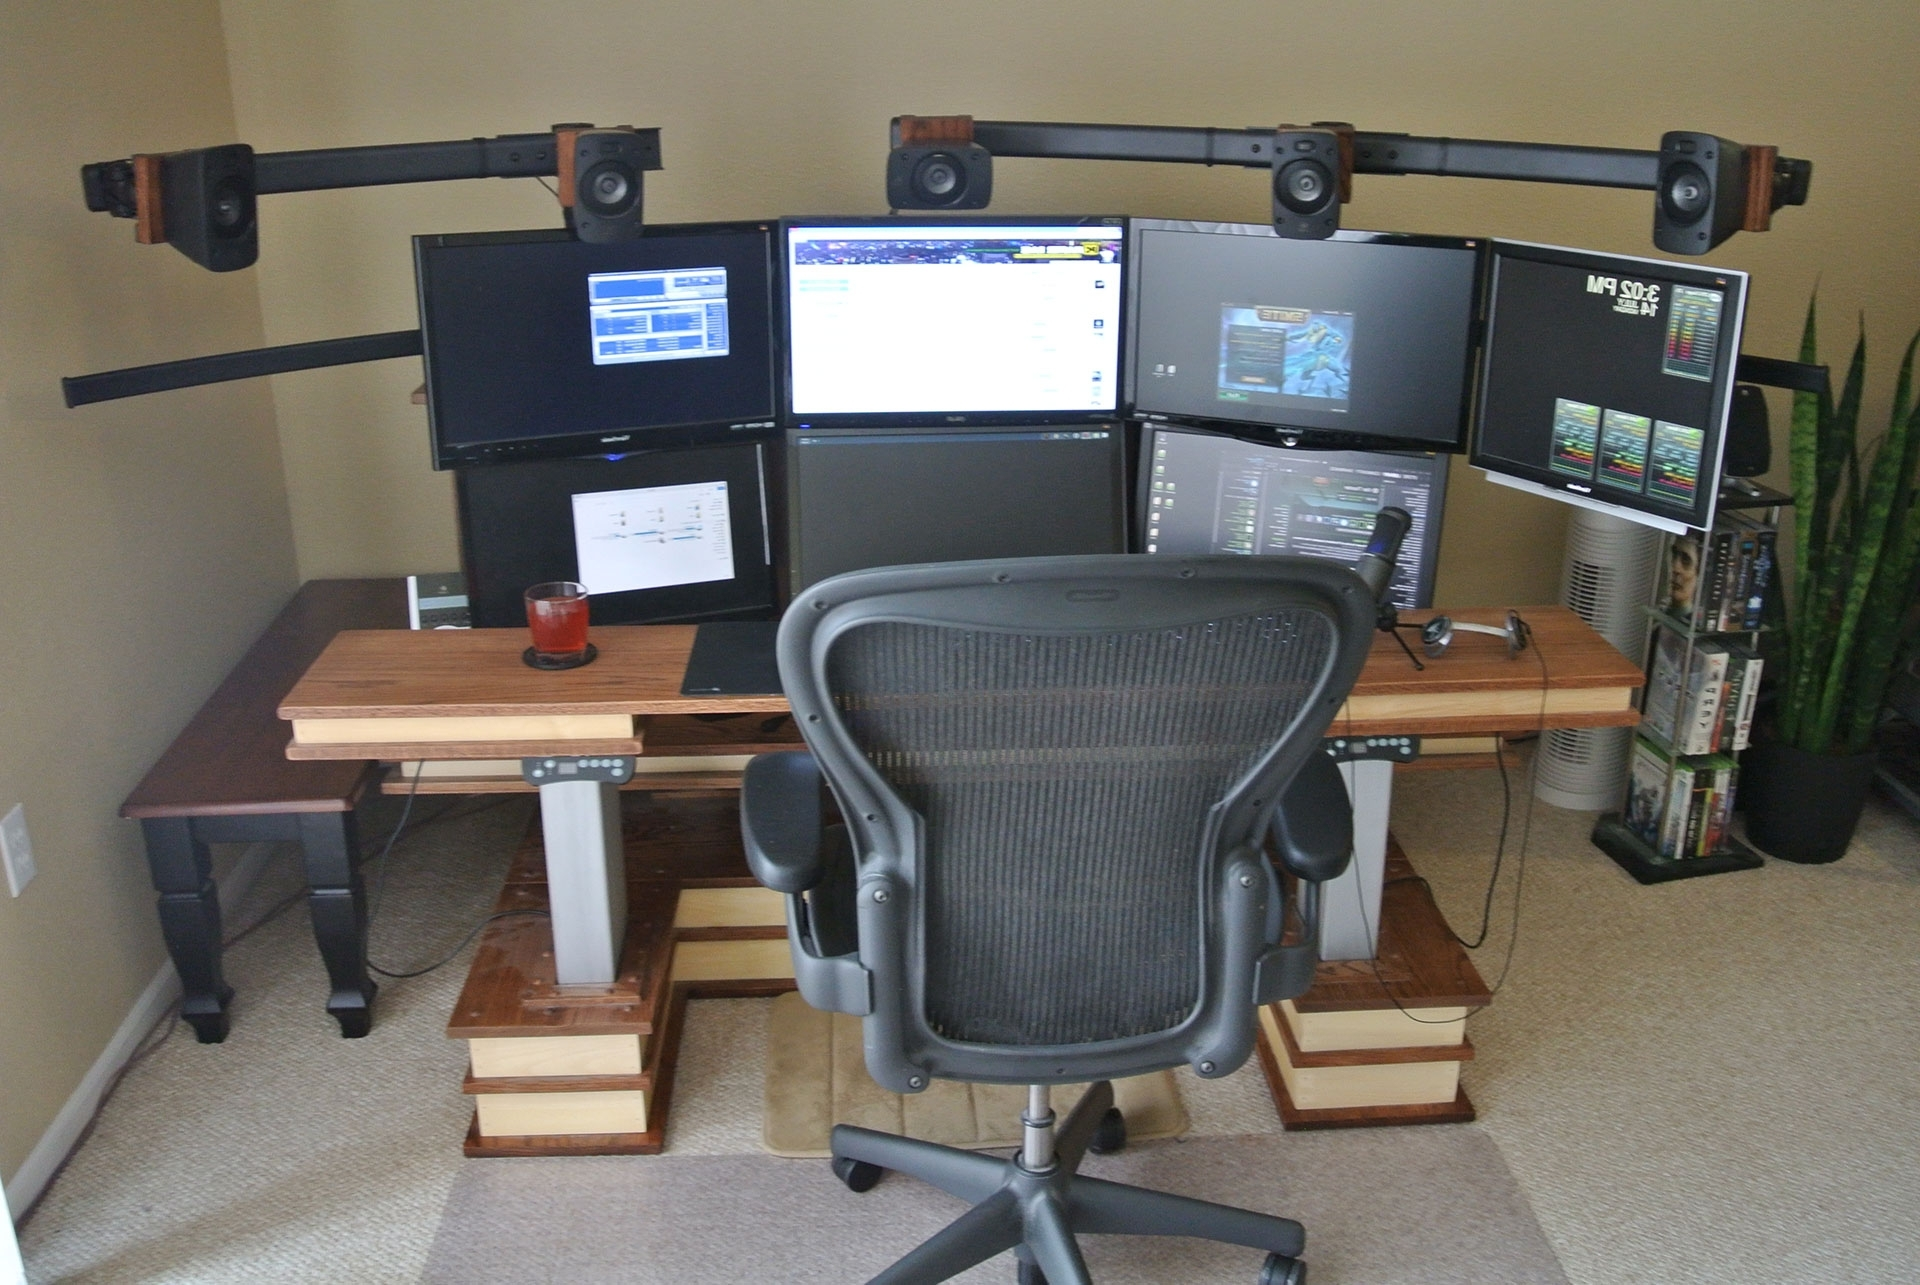 Computer Desks For Dual Monitors Throughout 2018 Desk: Inspiring Computer Desk For Multiple Monitors Ideas Cheap (View 6 of 20)